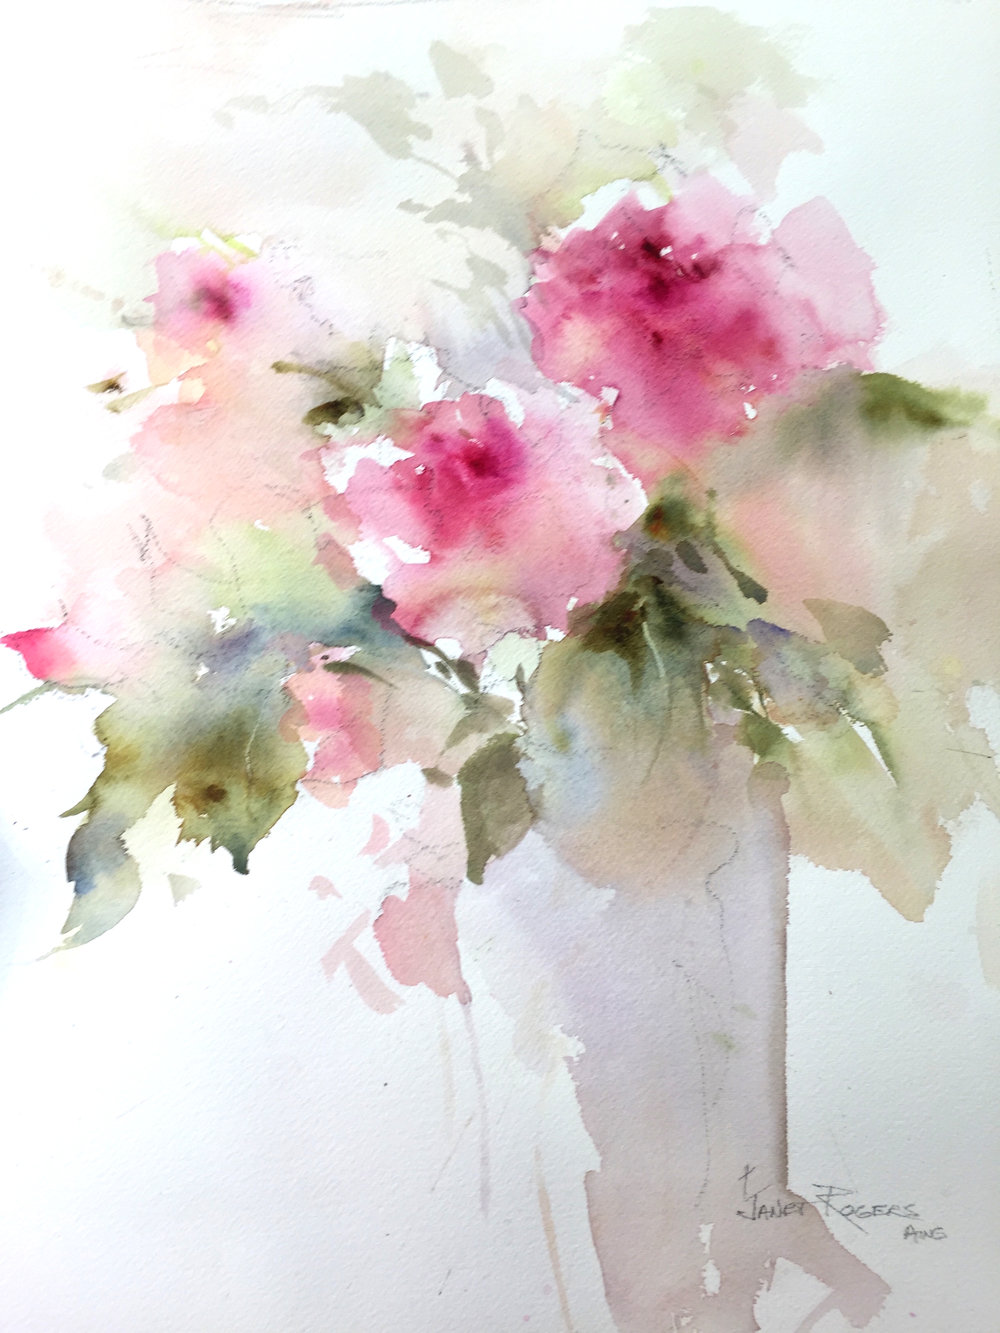 Janet Rogers Watercolor Impressions From Flowers To Figures June